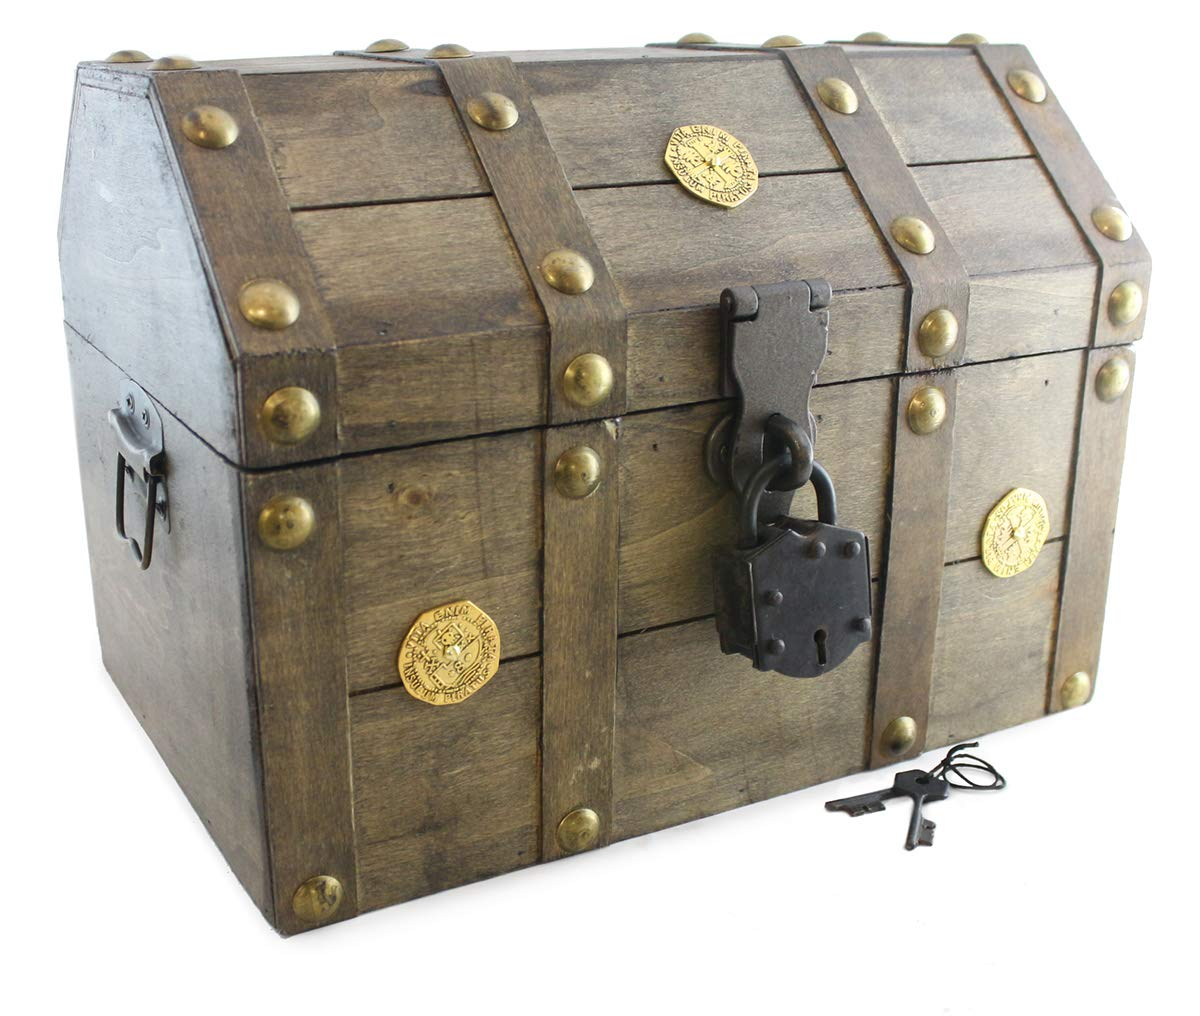 Well Pack Box Pirate Treasure Chest Box 13''x 9''x 9'' with Antique Lock Key Distressed Brown (Large) by Well Pack Box